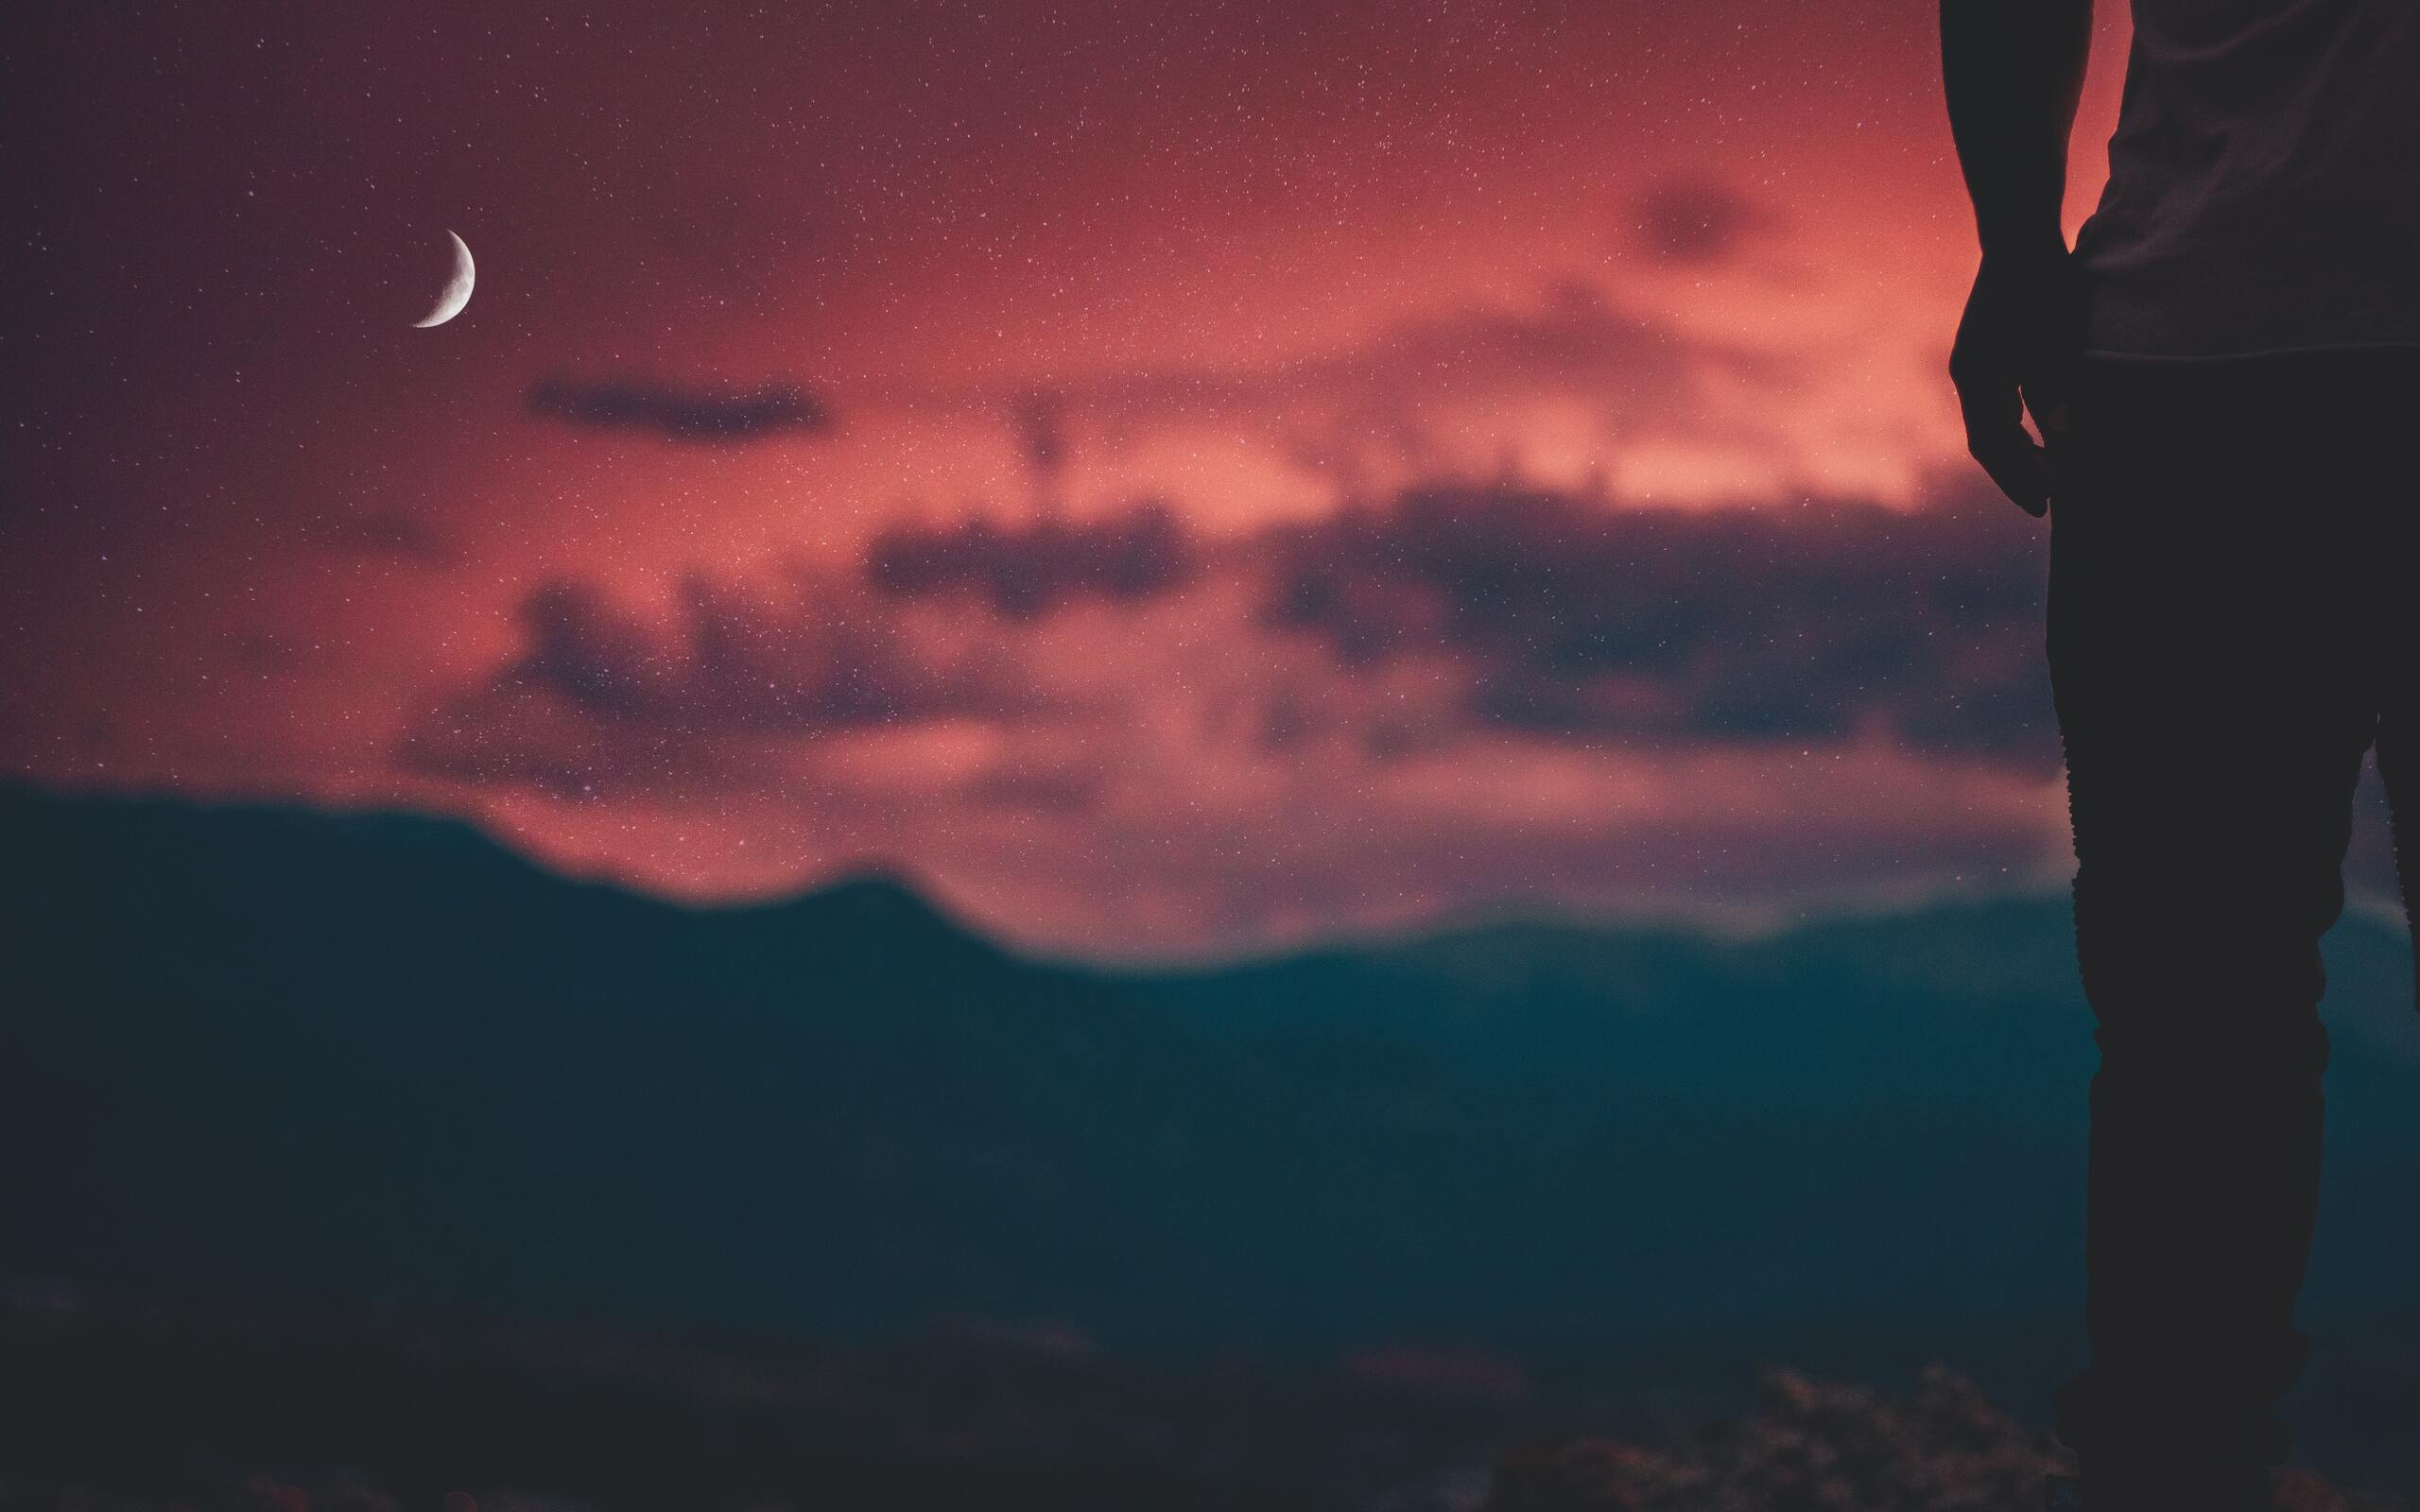 man-standing-silhouette-red-sky-scenic-nature-view-je.jpg